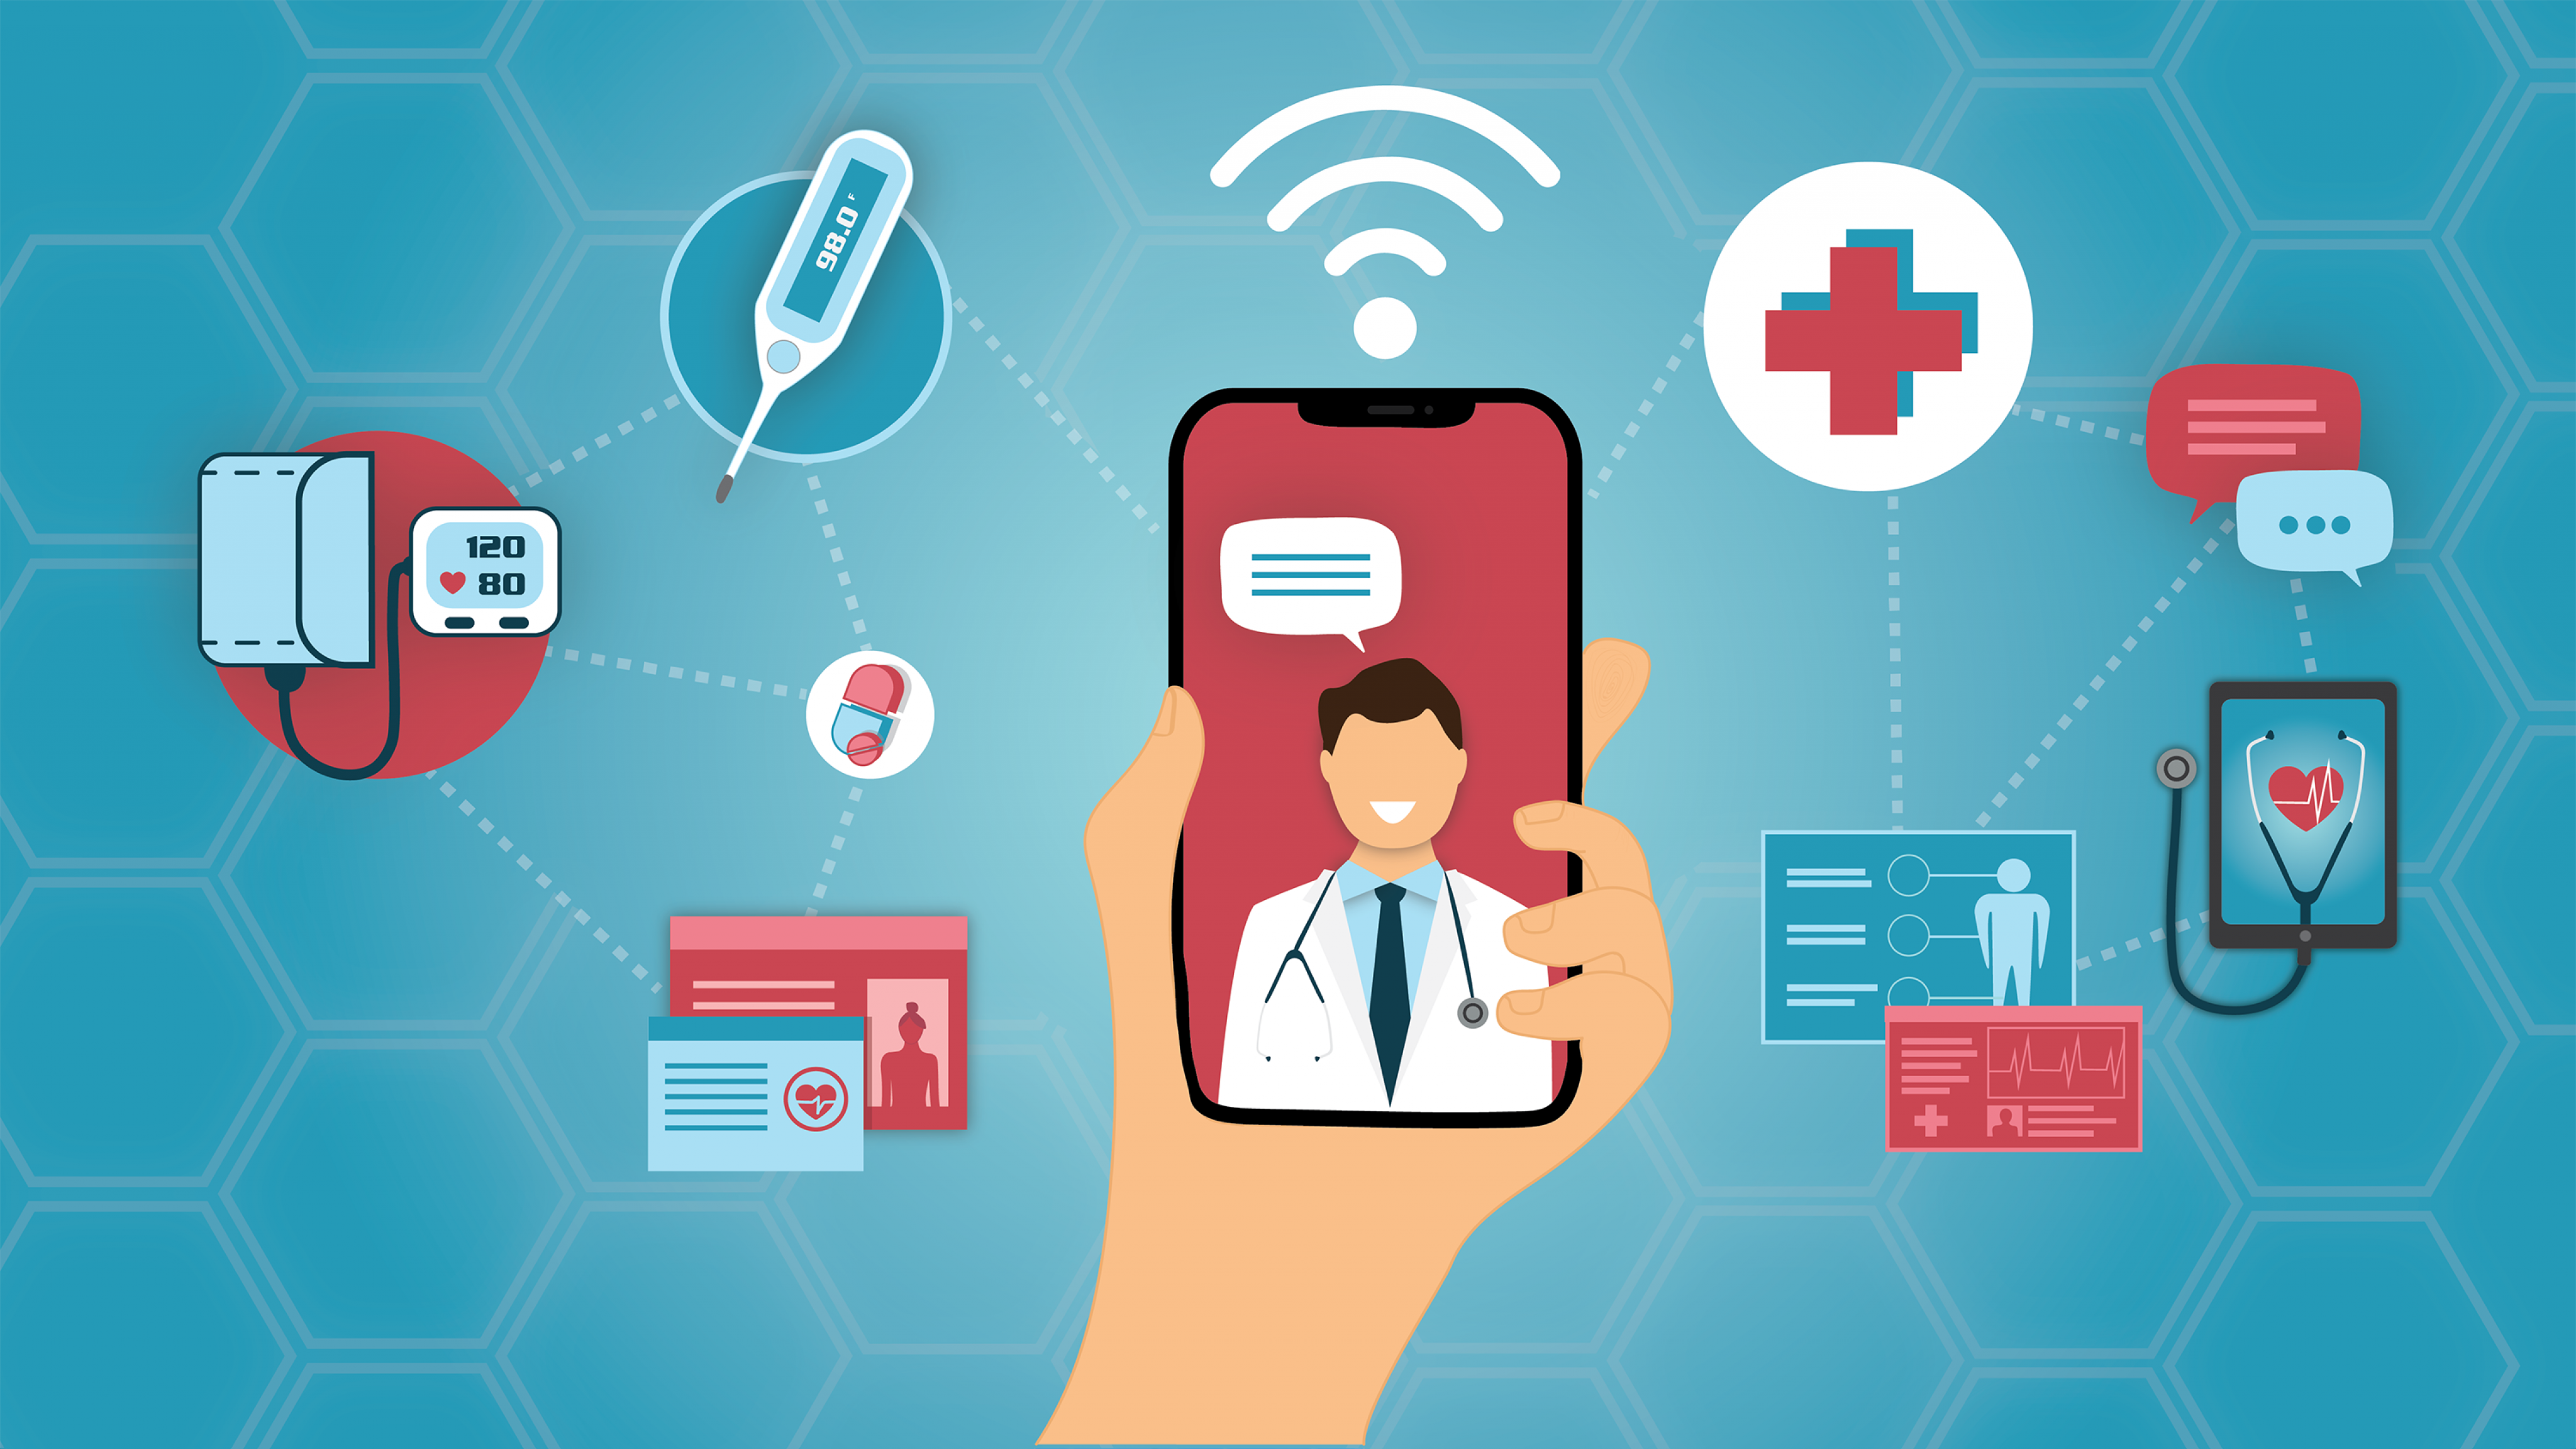 Design in Connected Healthcare ROBRADY